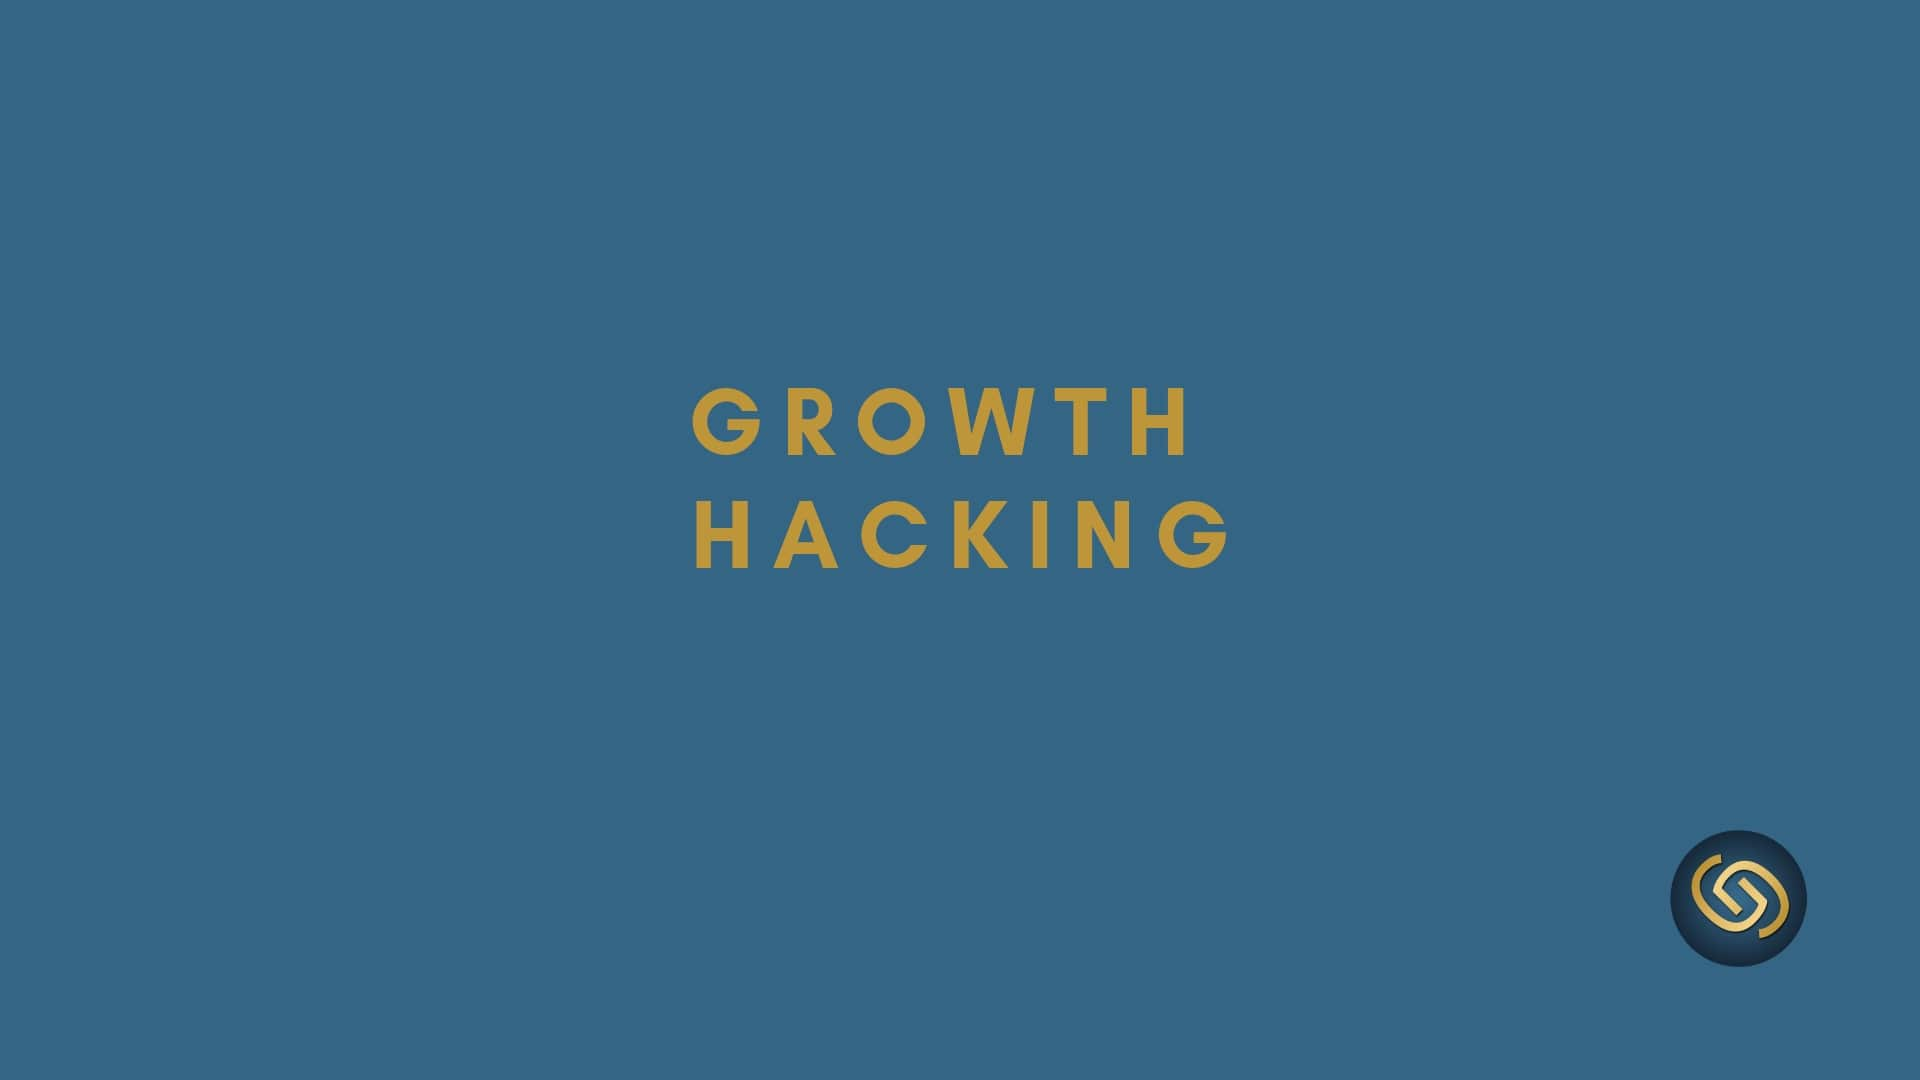 Growth hacking guillaume girod